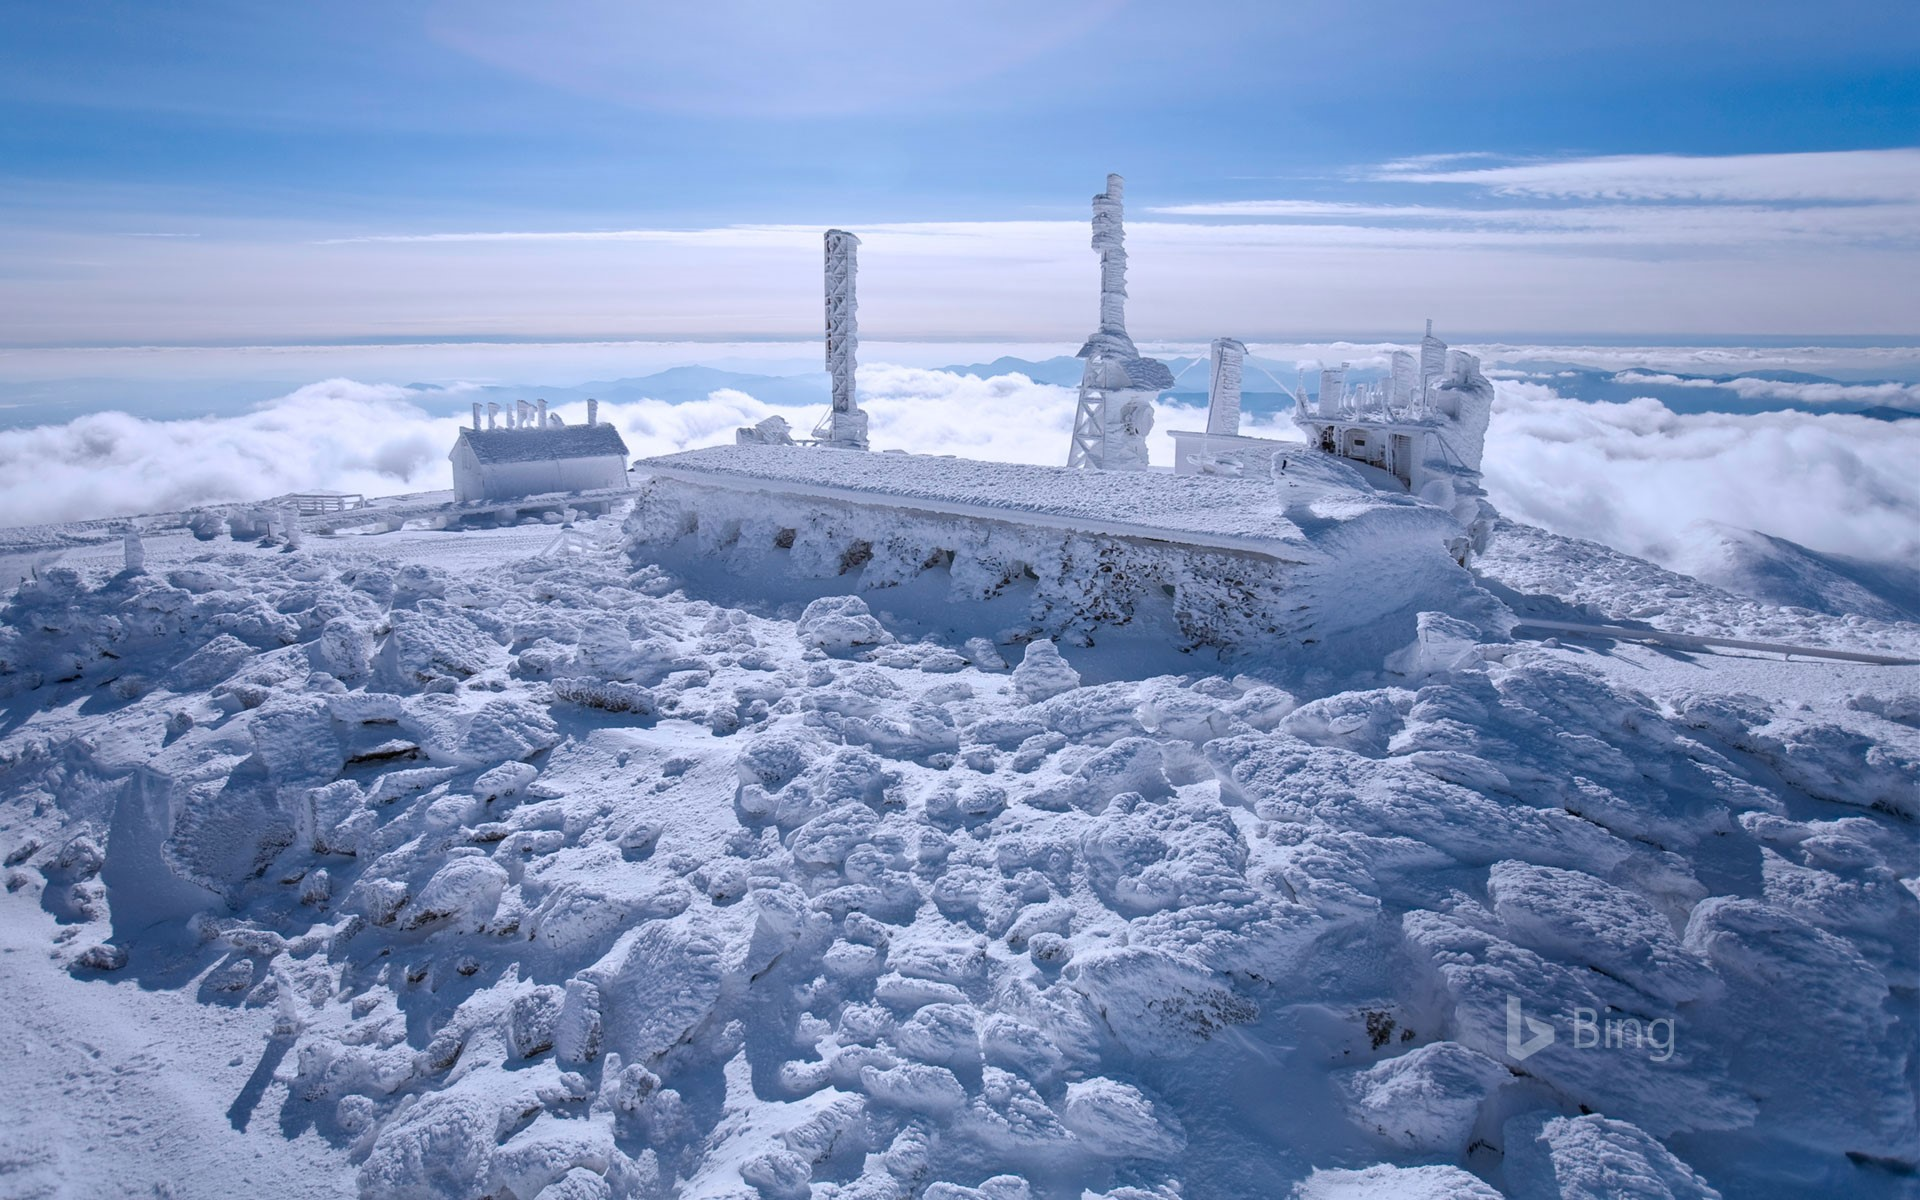 The Mount Washington Observatory in New Hampshire